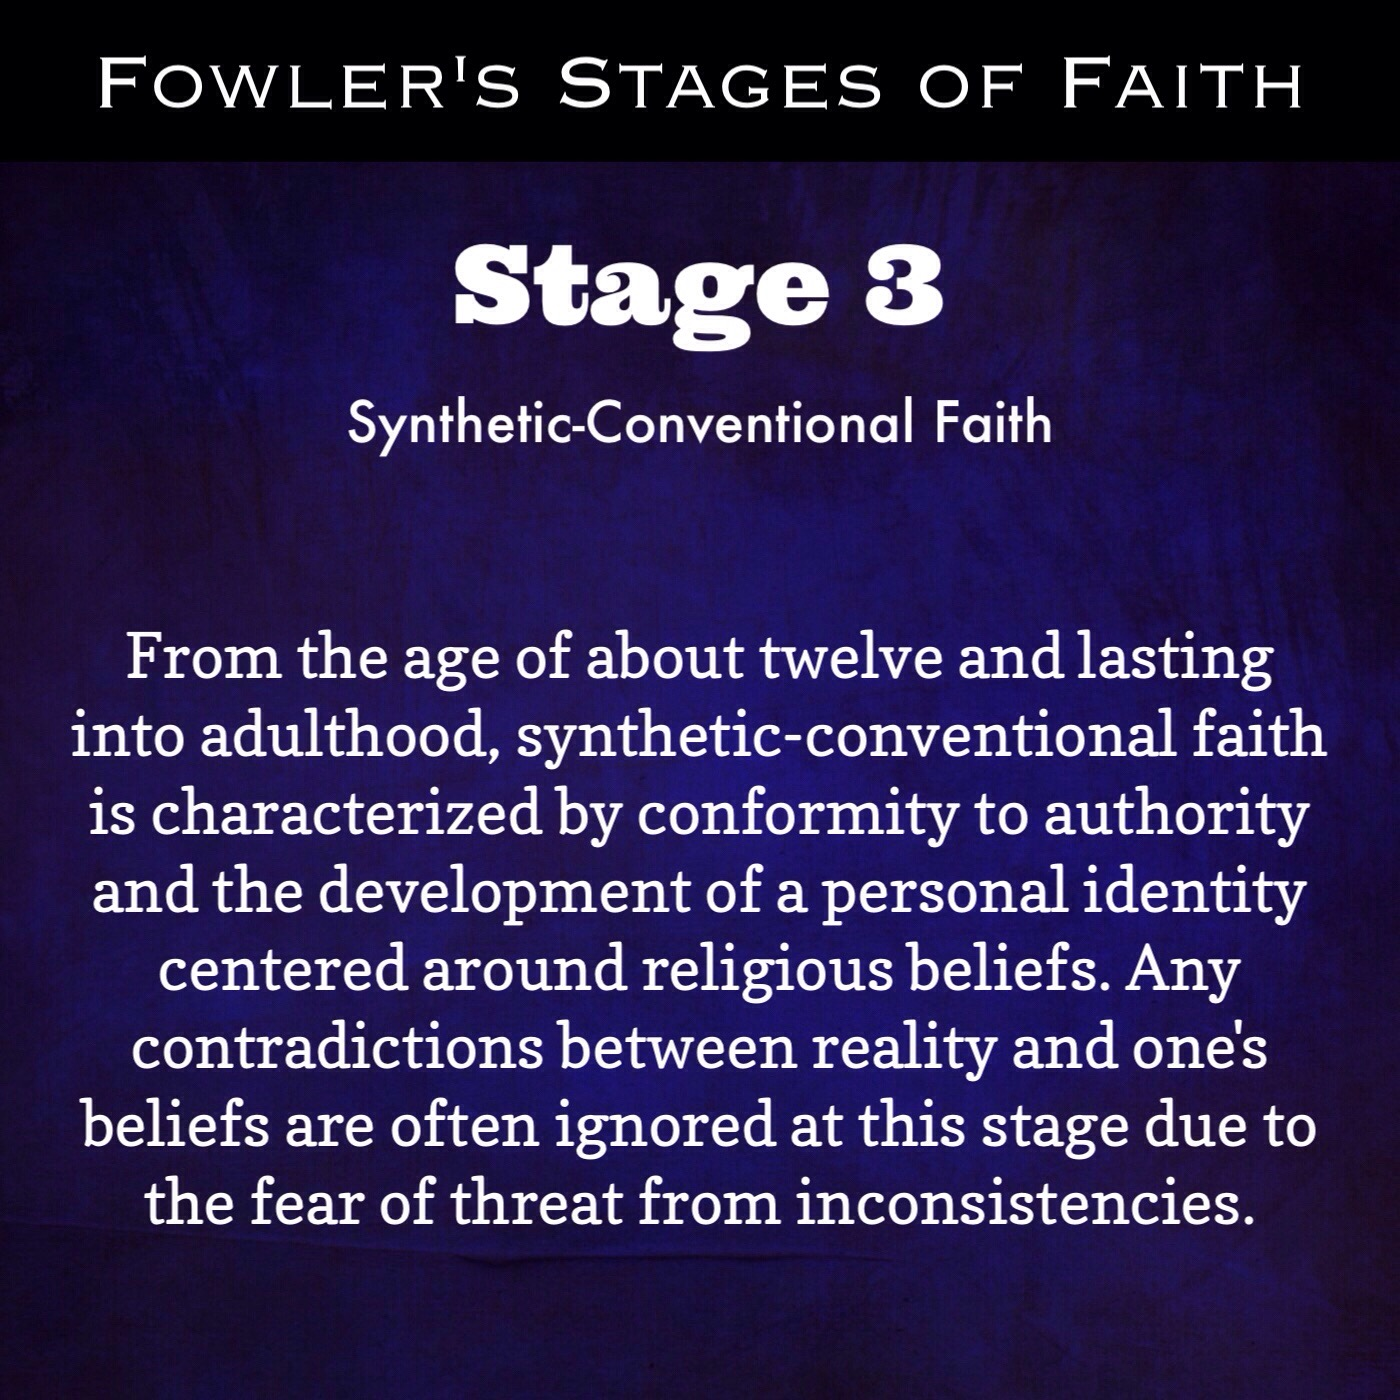 Fowler's Stages of Faith